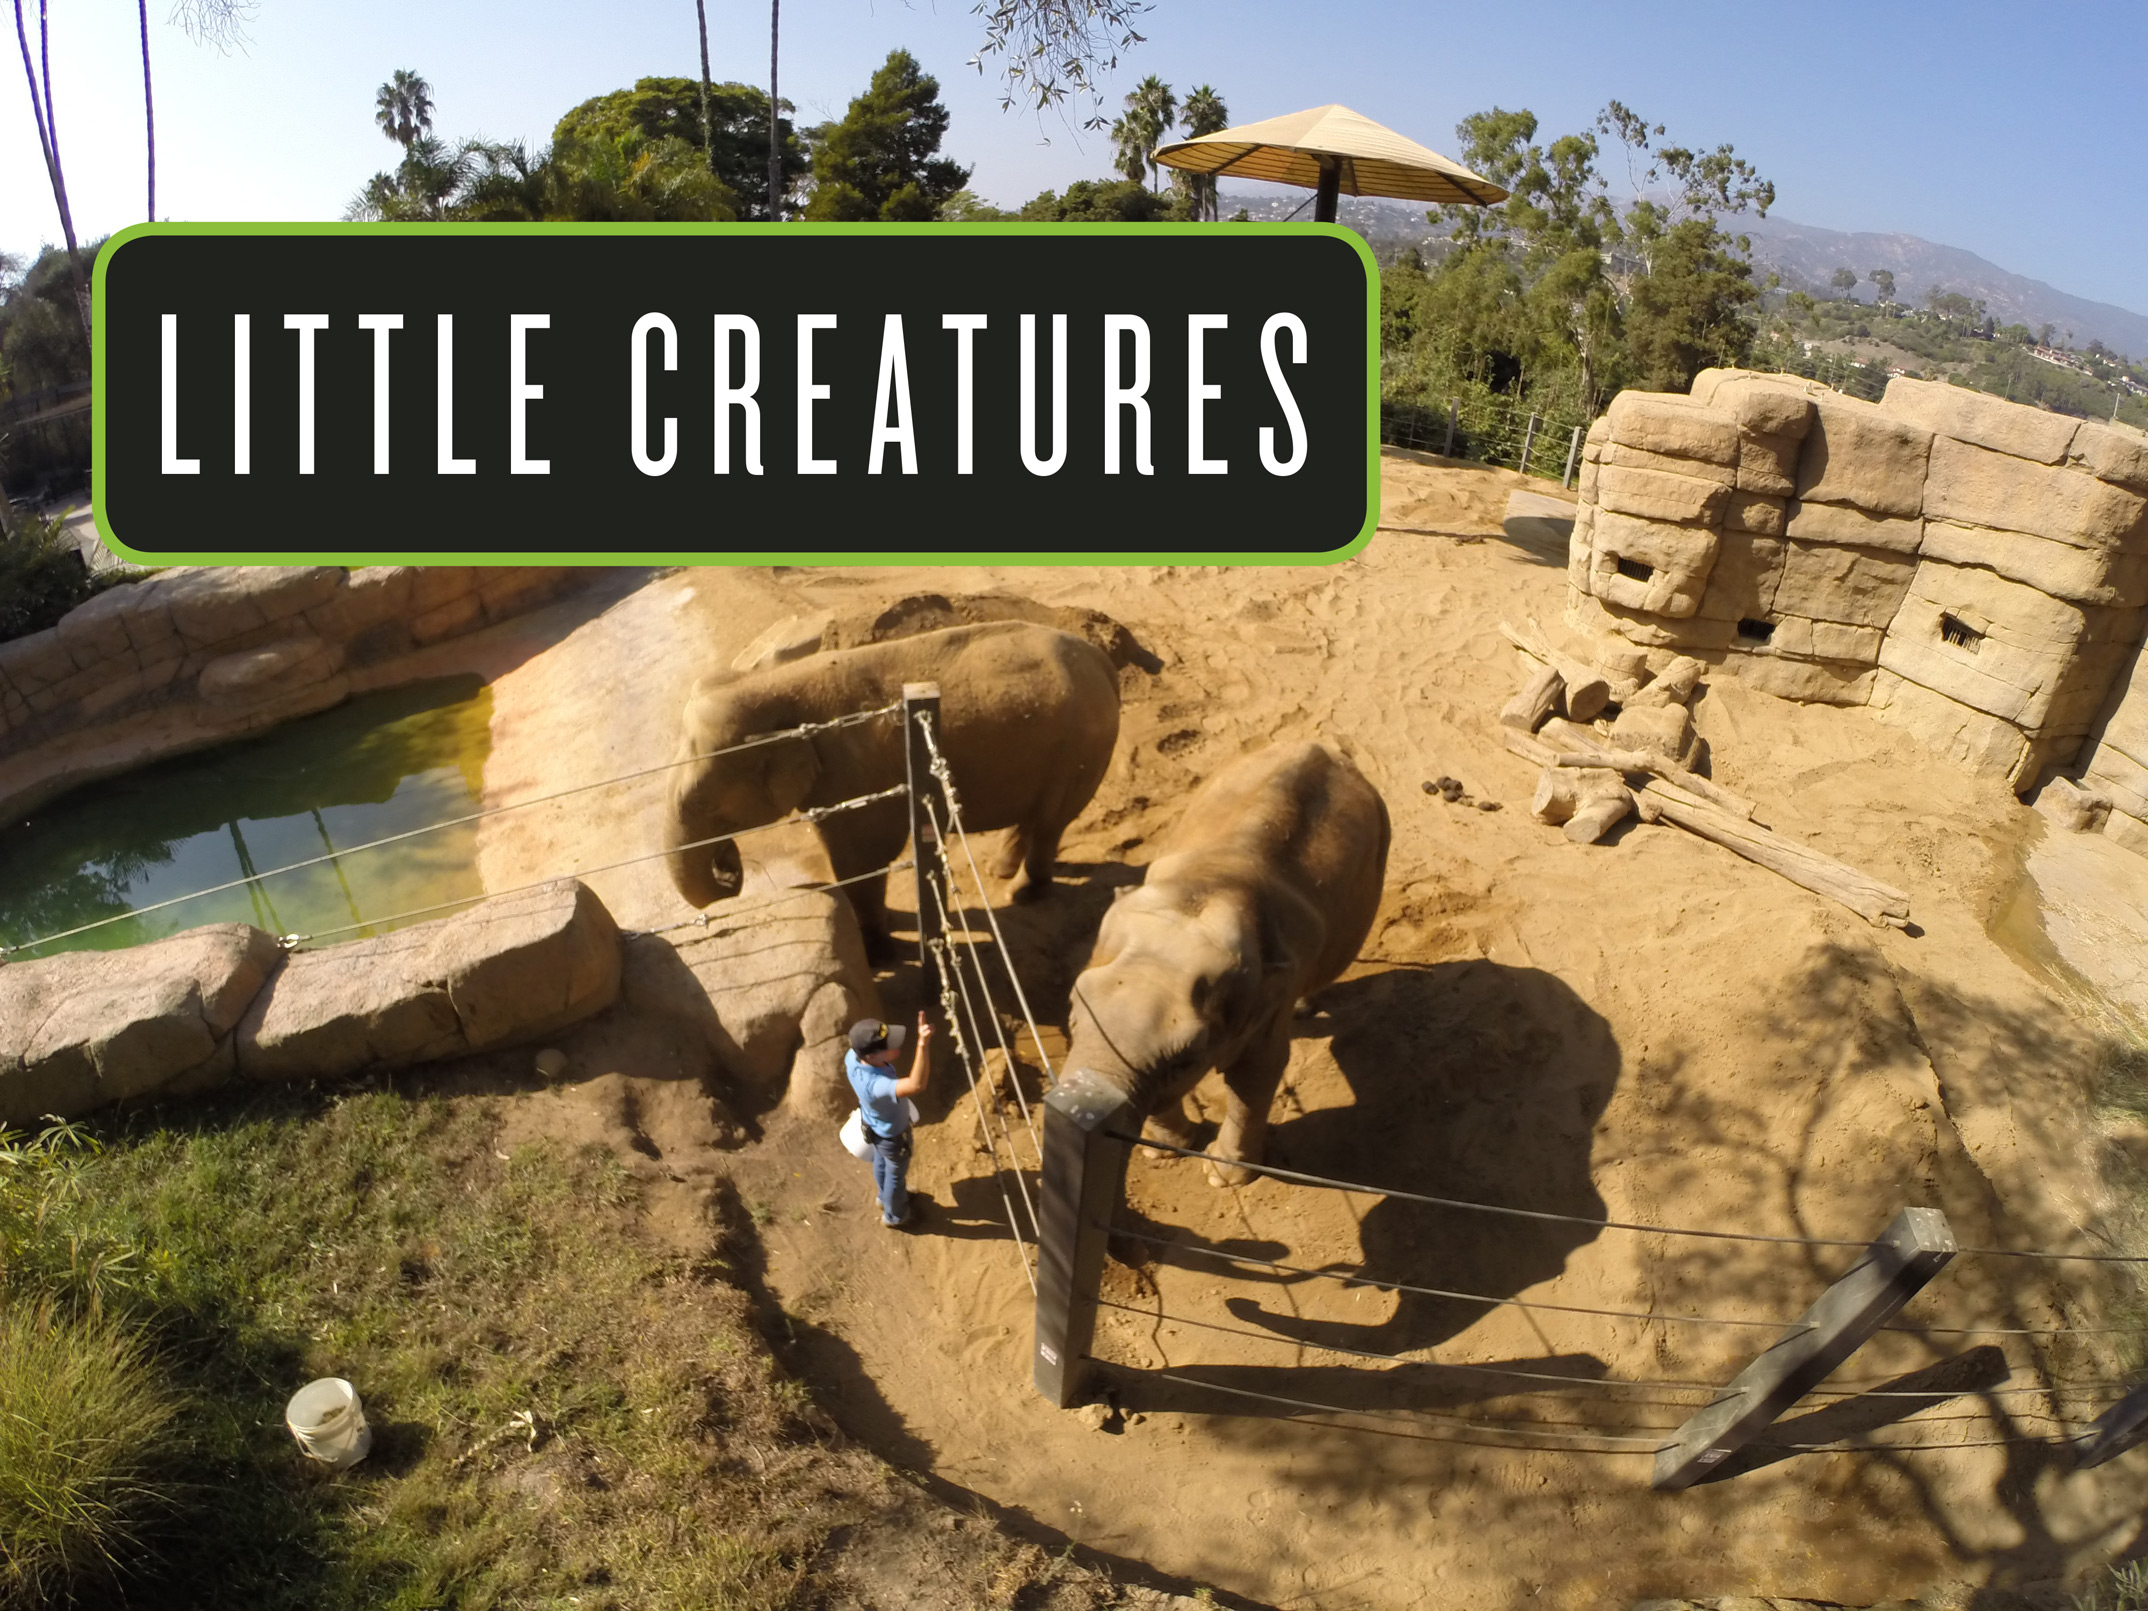 Best of Santa Barbara® 2017: Little Creatures